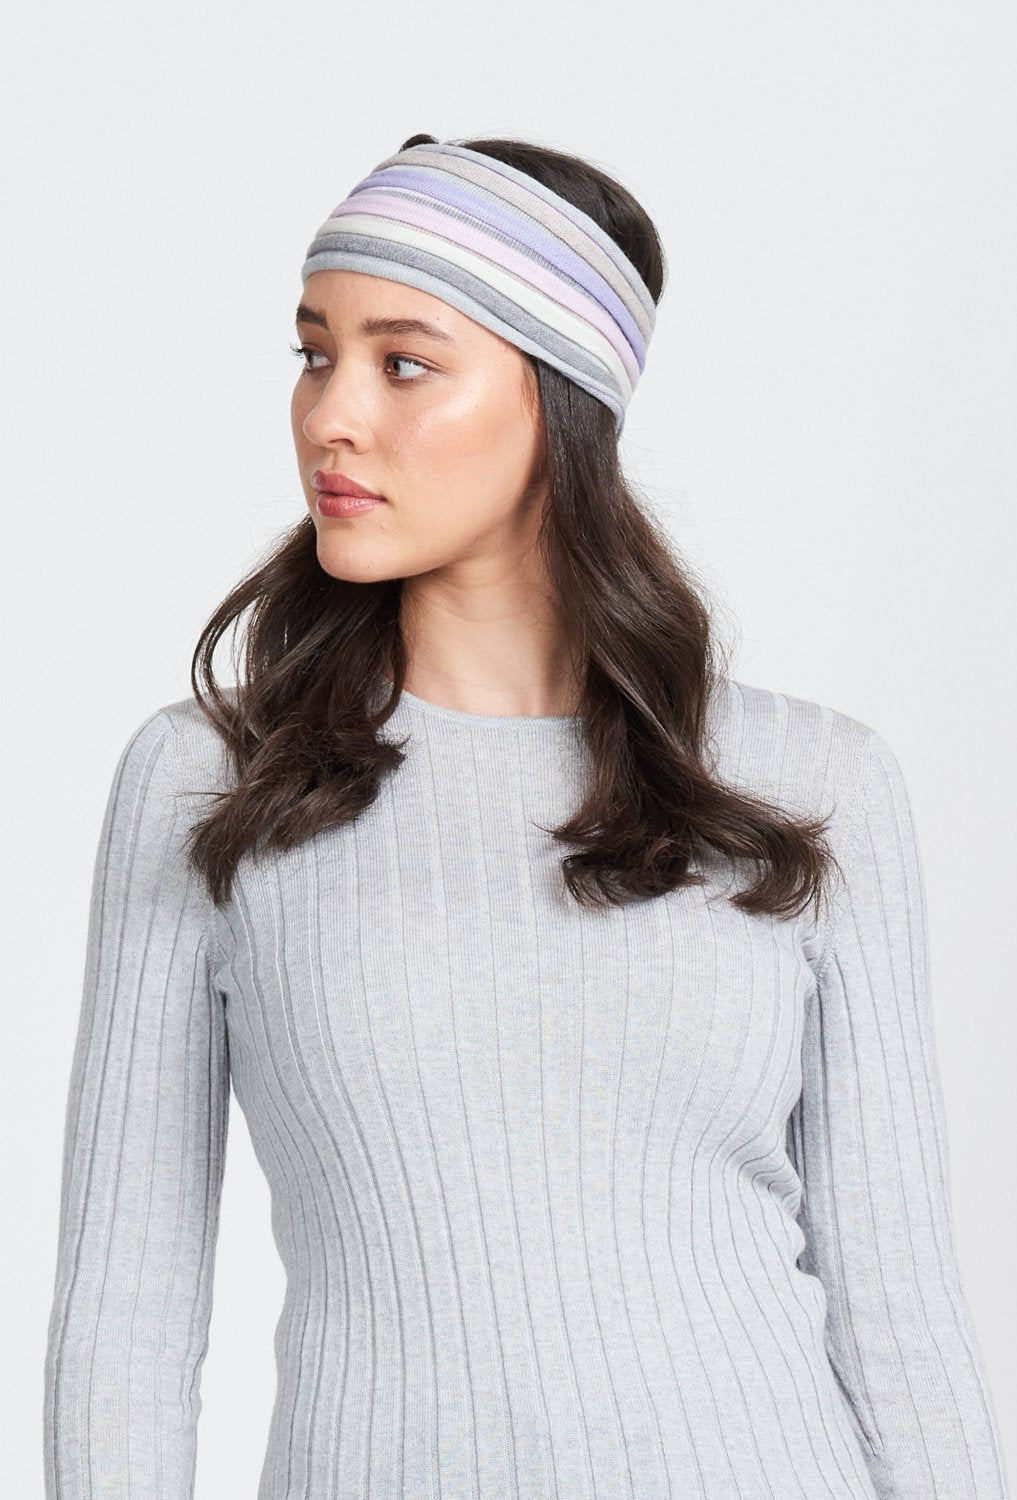 MULTI STRIPE HEADBAND - Woolshed Gallery